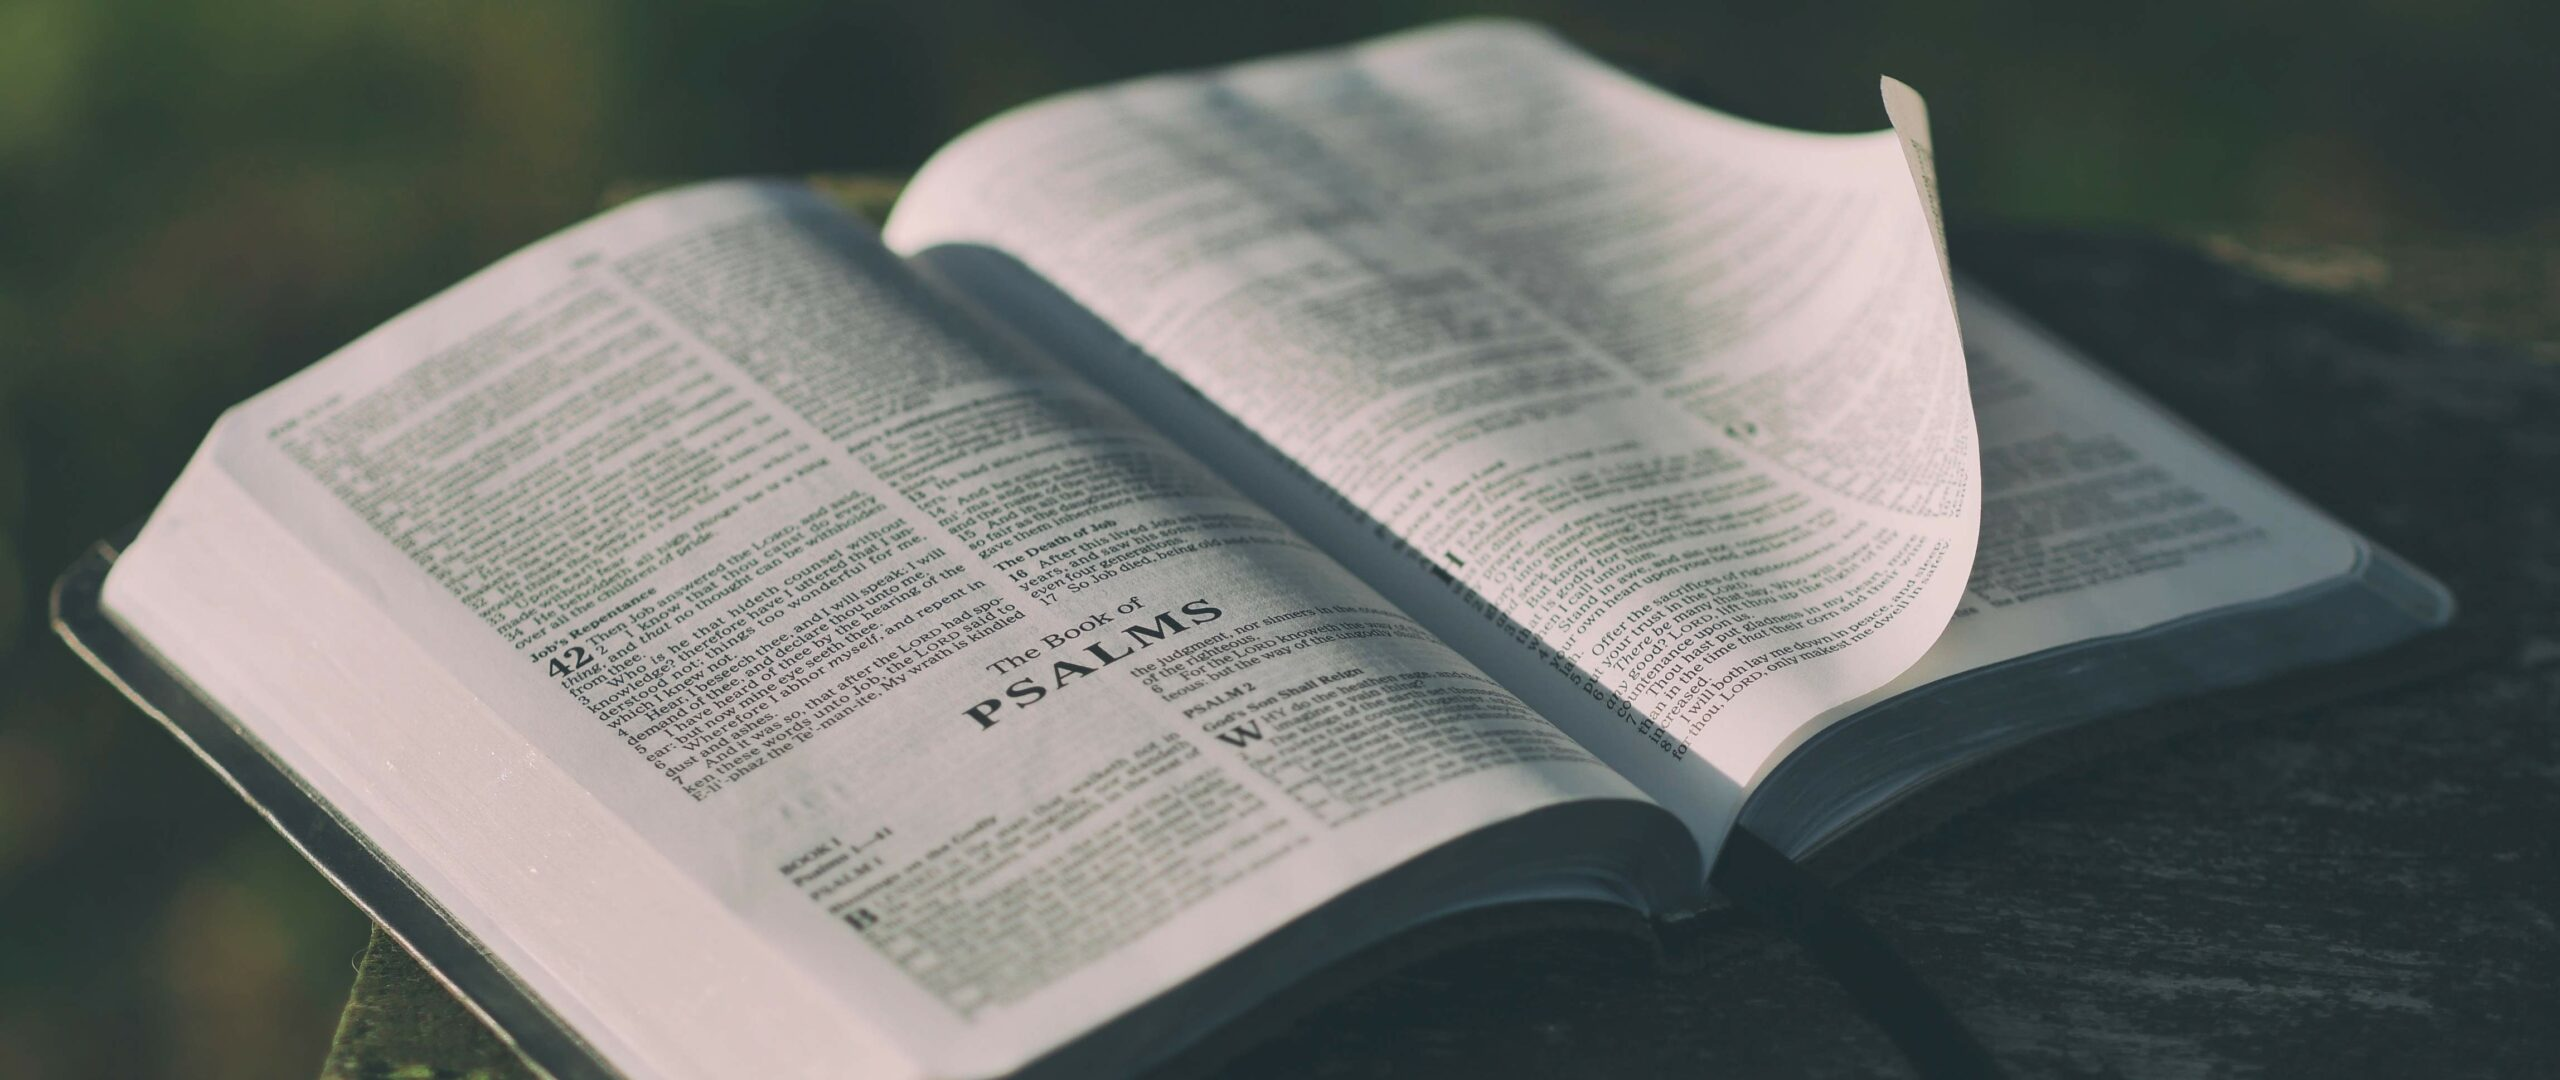 Main image for Resolve to Study the Bible